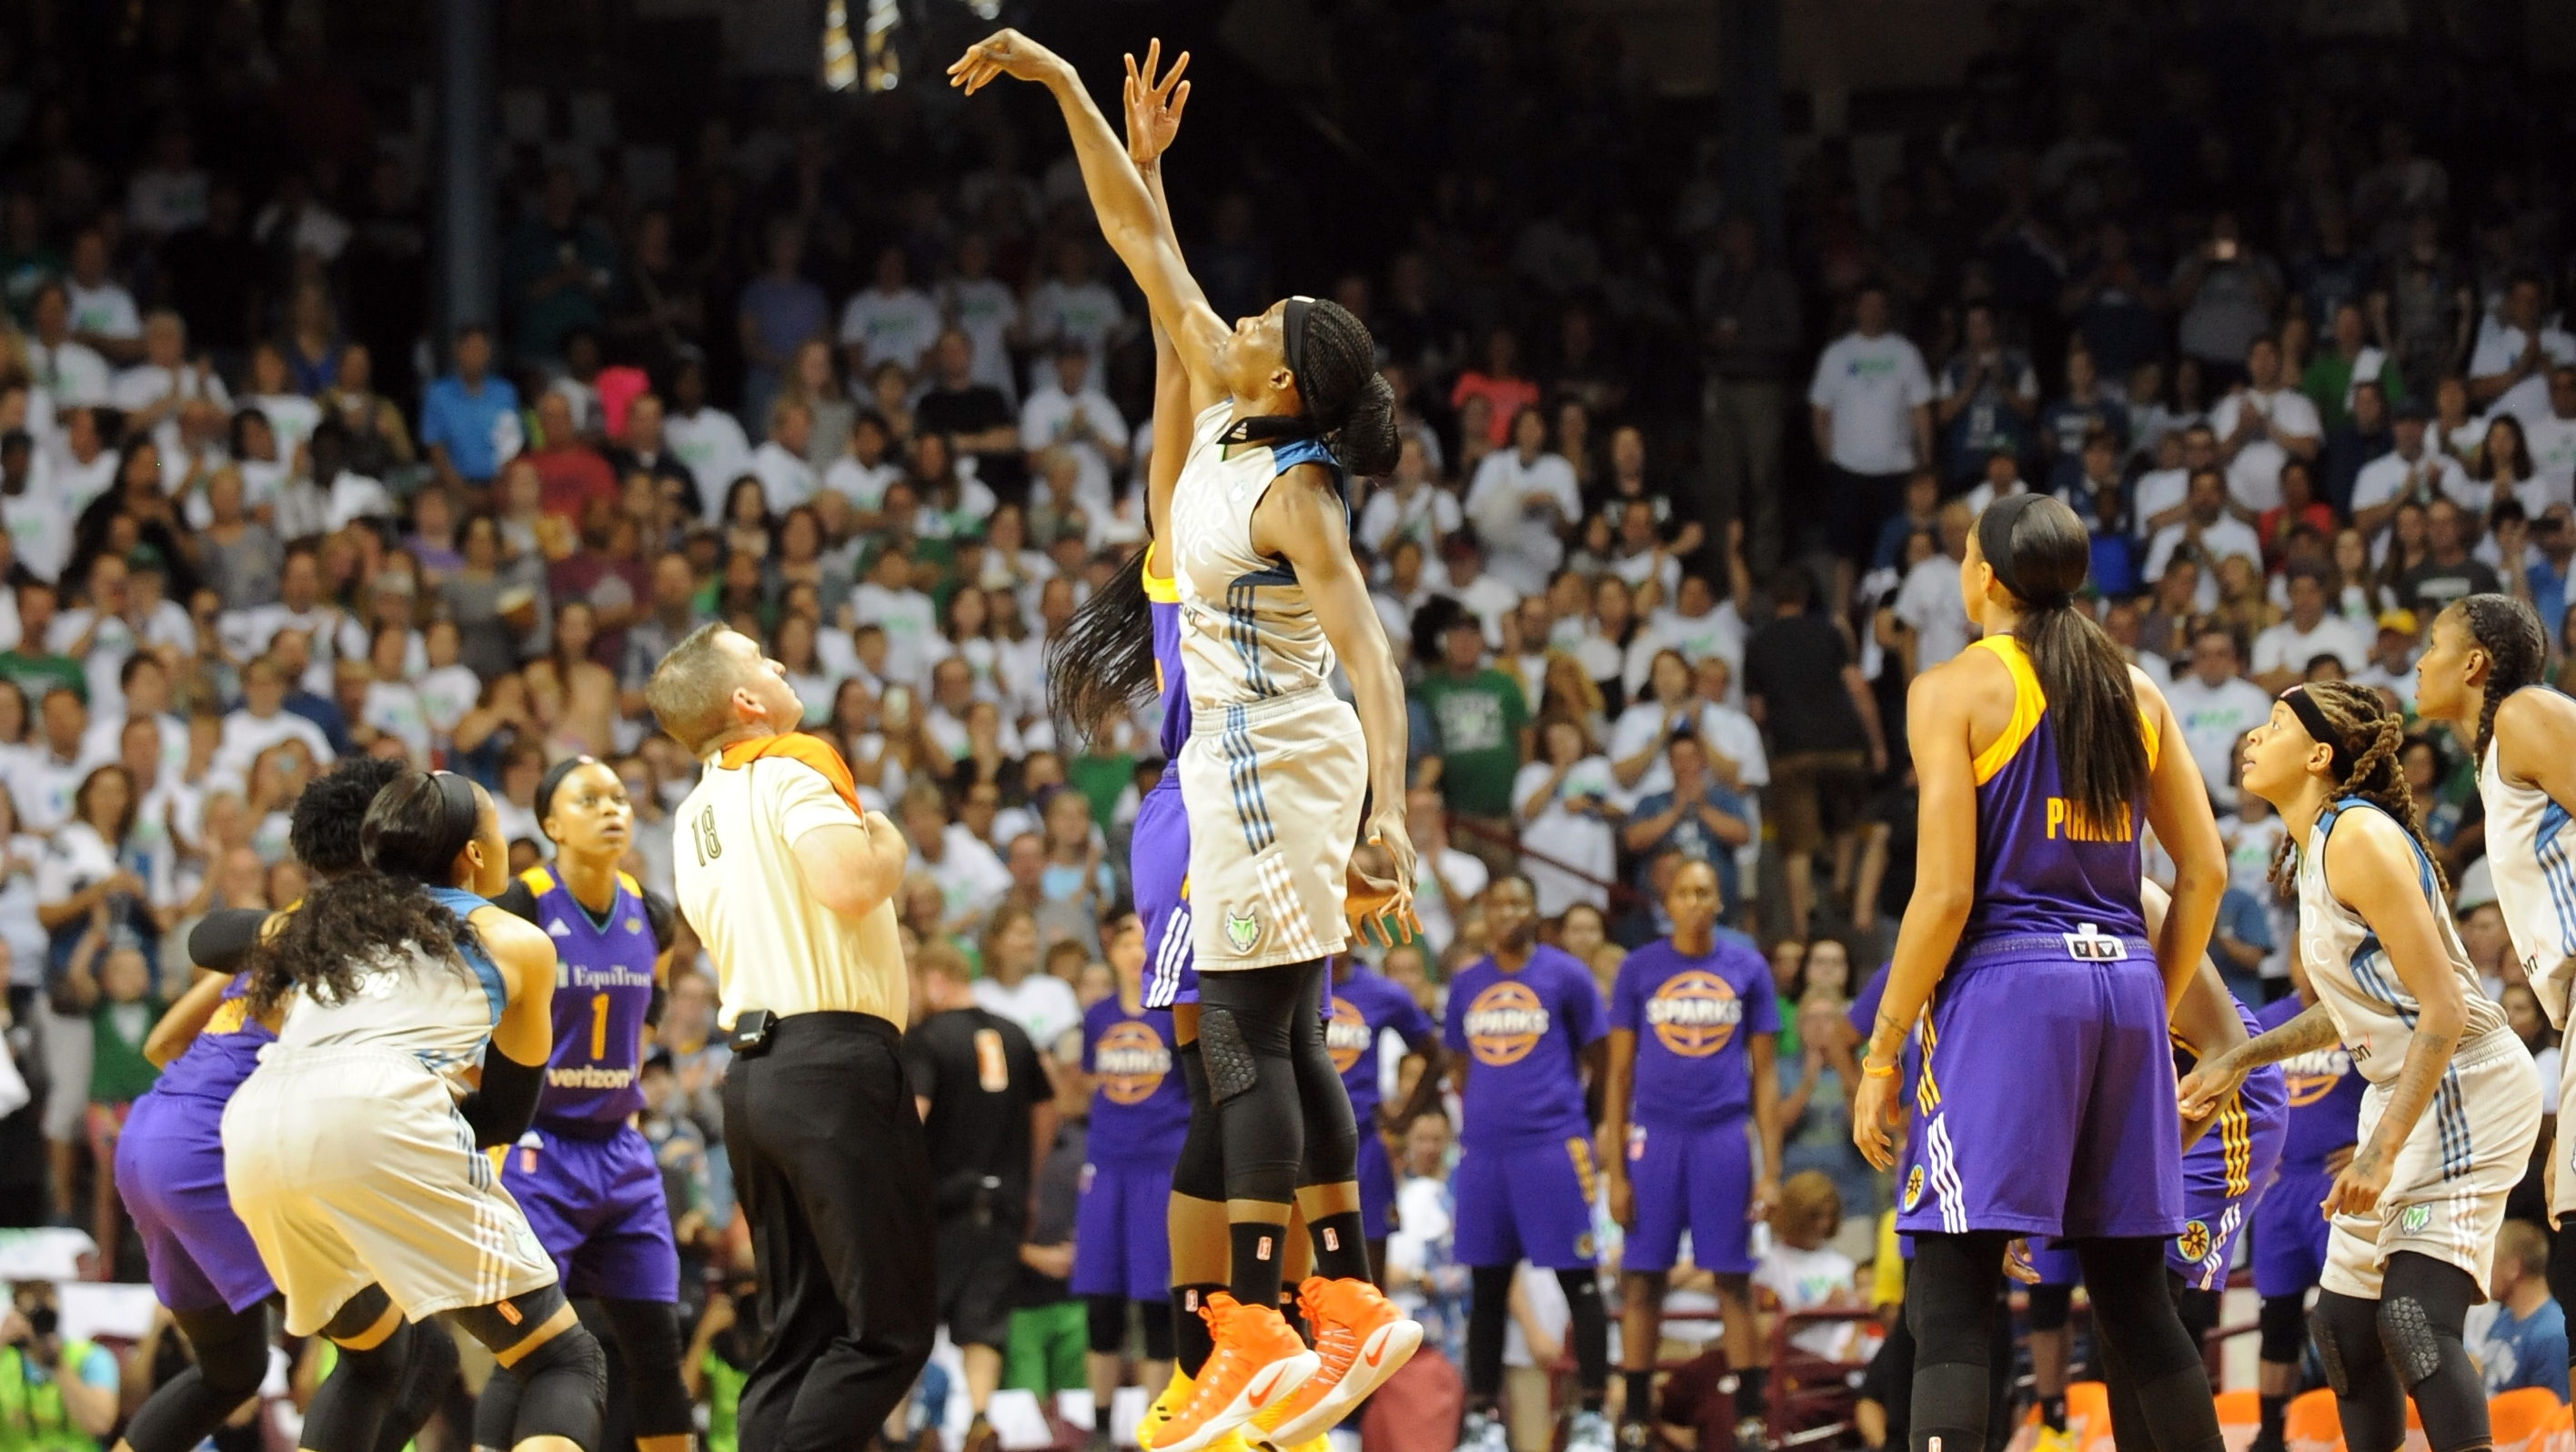 Buzzer-beater WNBA Finals game 1 delivers best overnight ratings ever